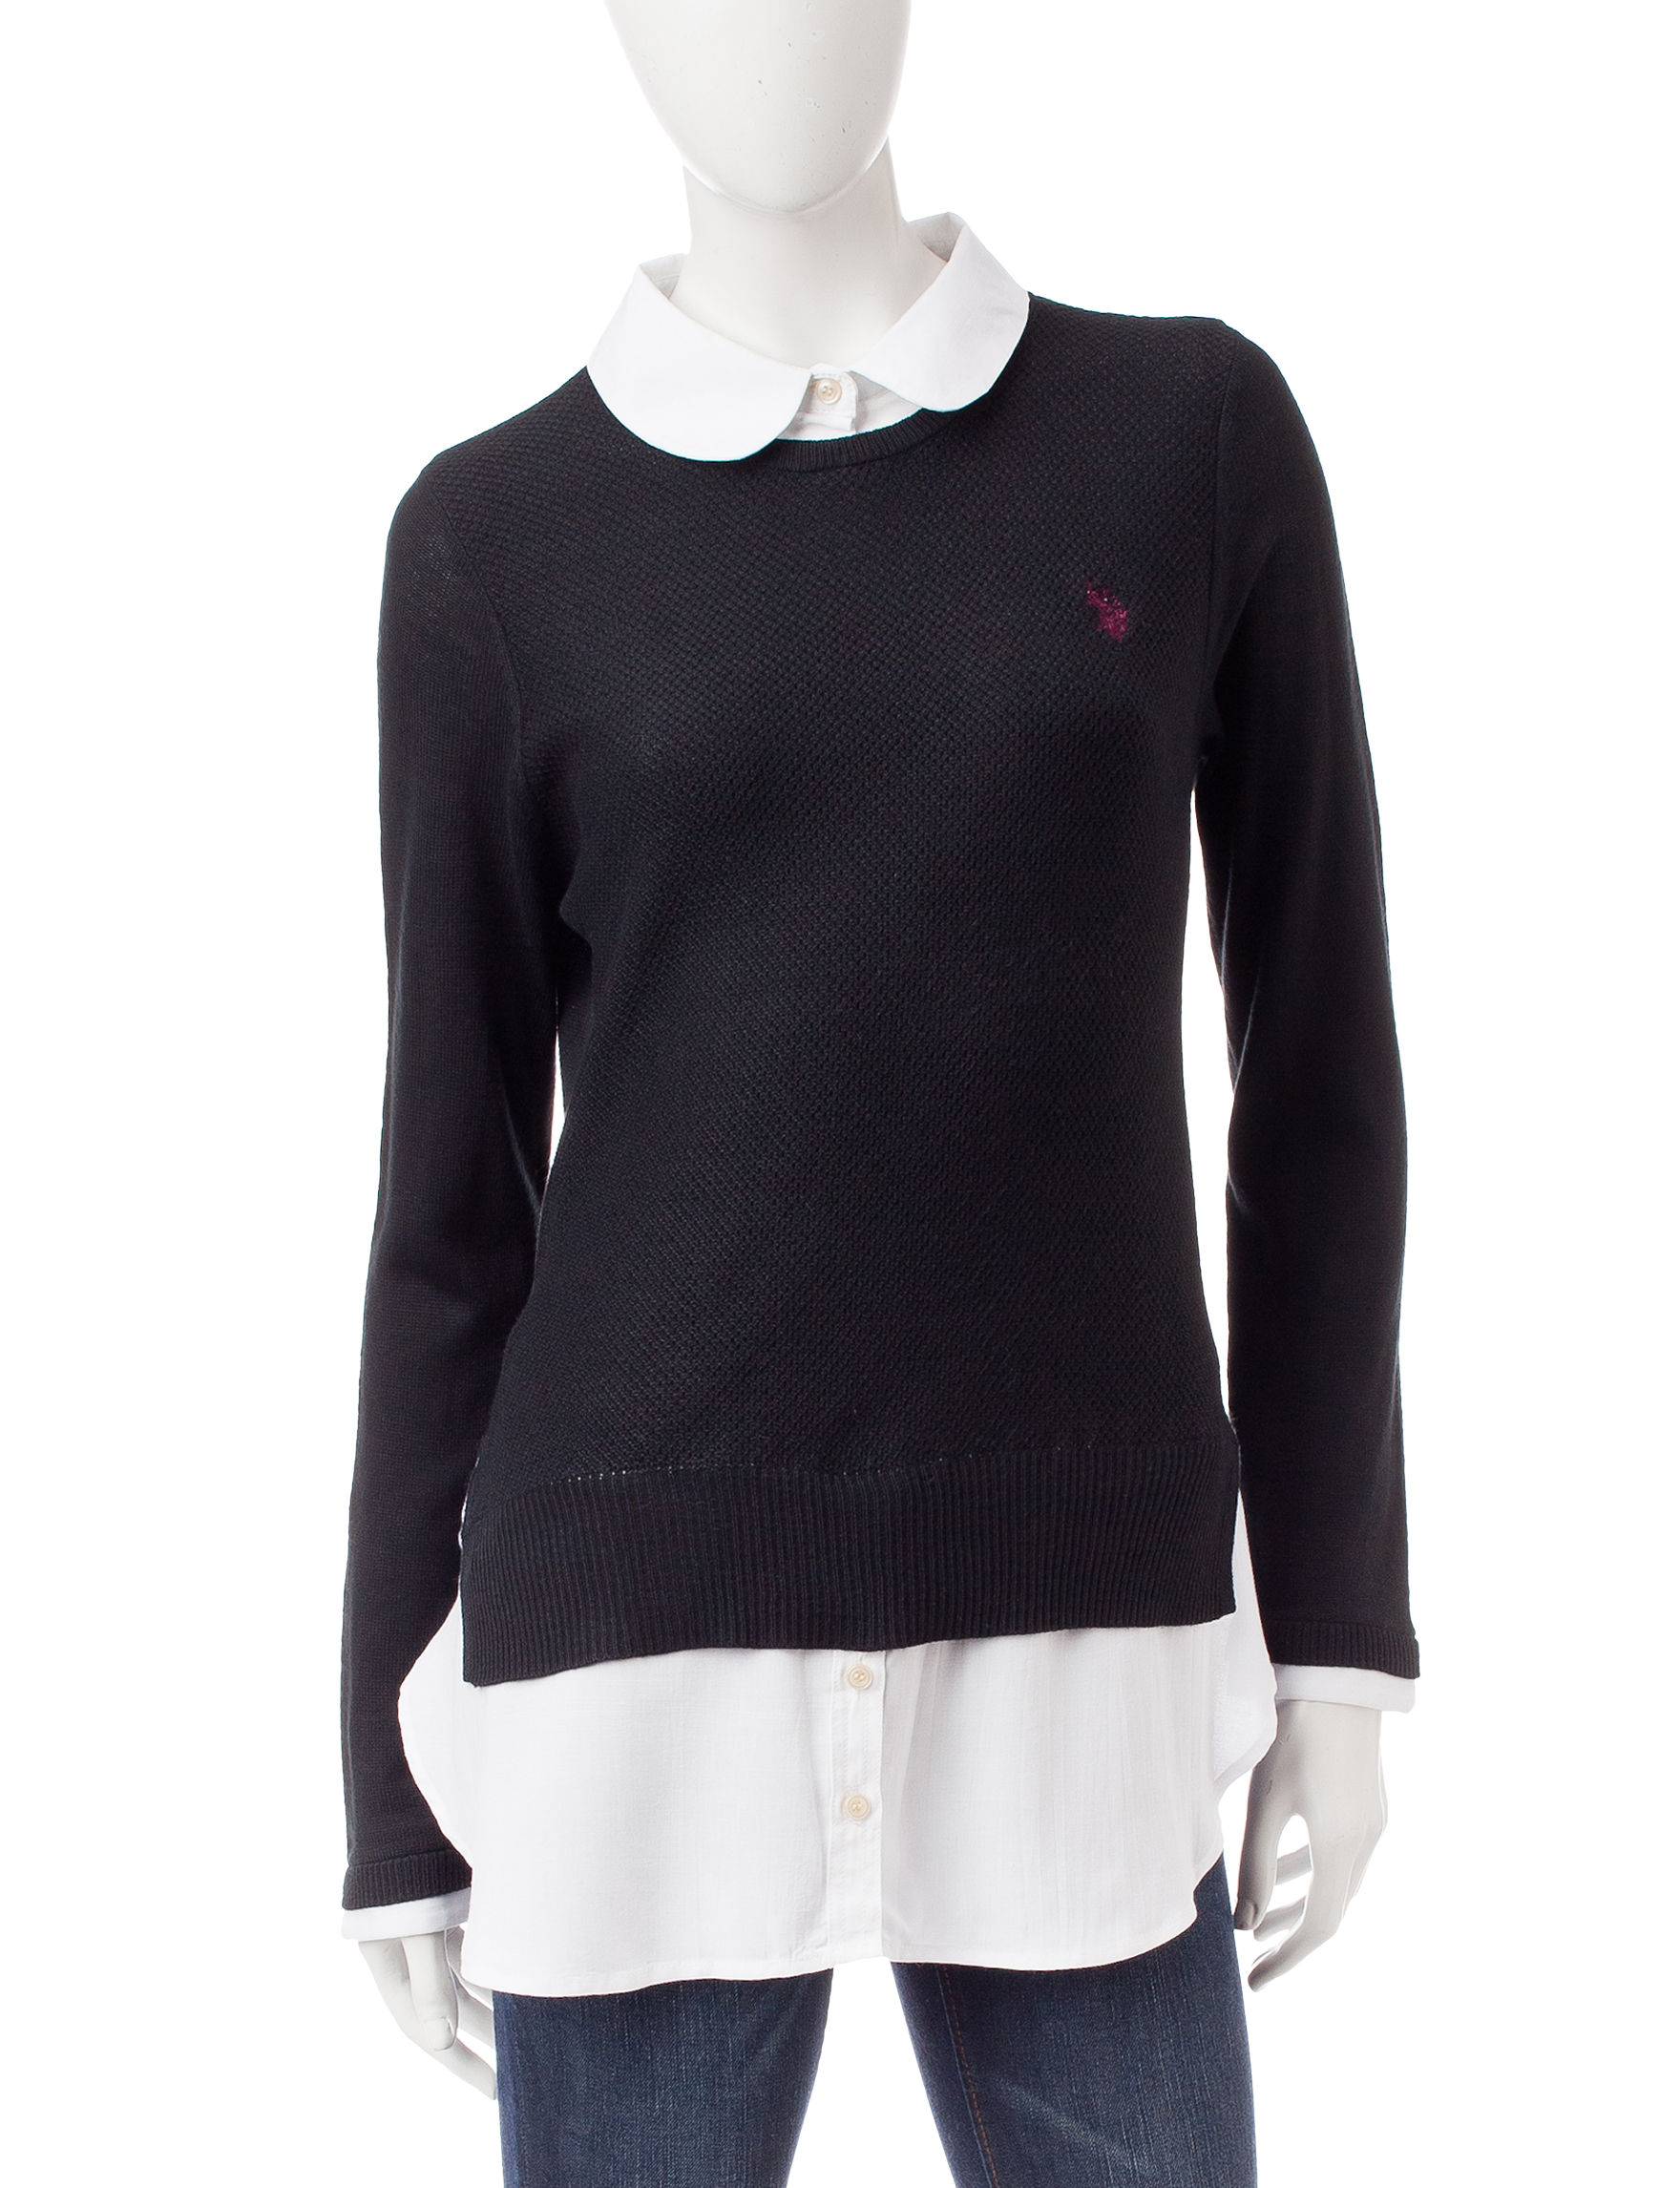 U.S. Polo Assn. Black Pull-overs Sweaters